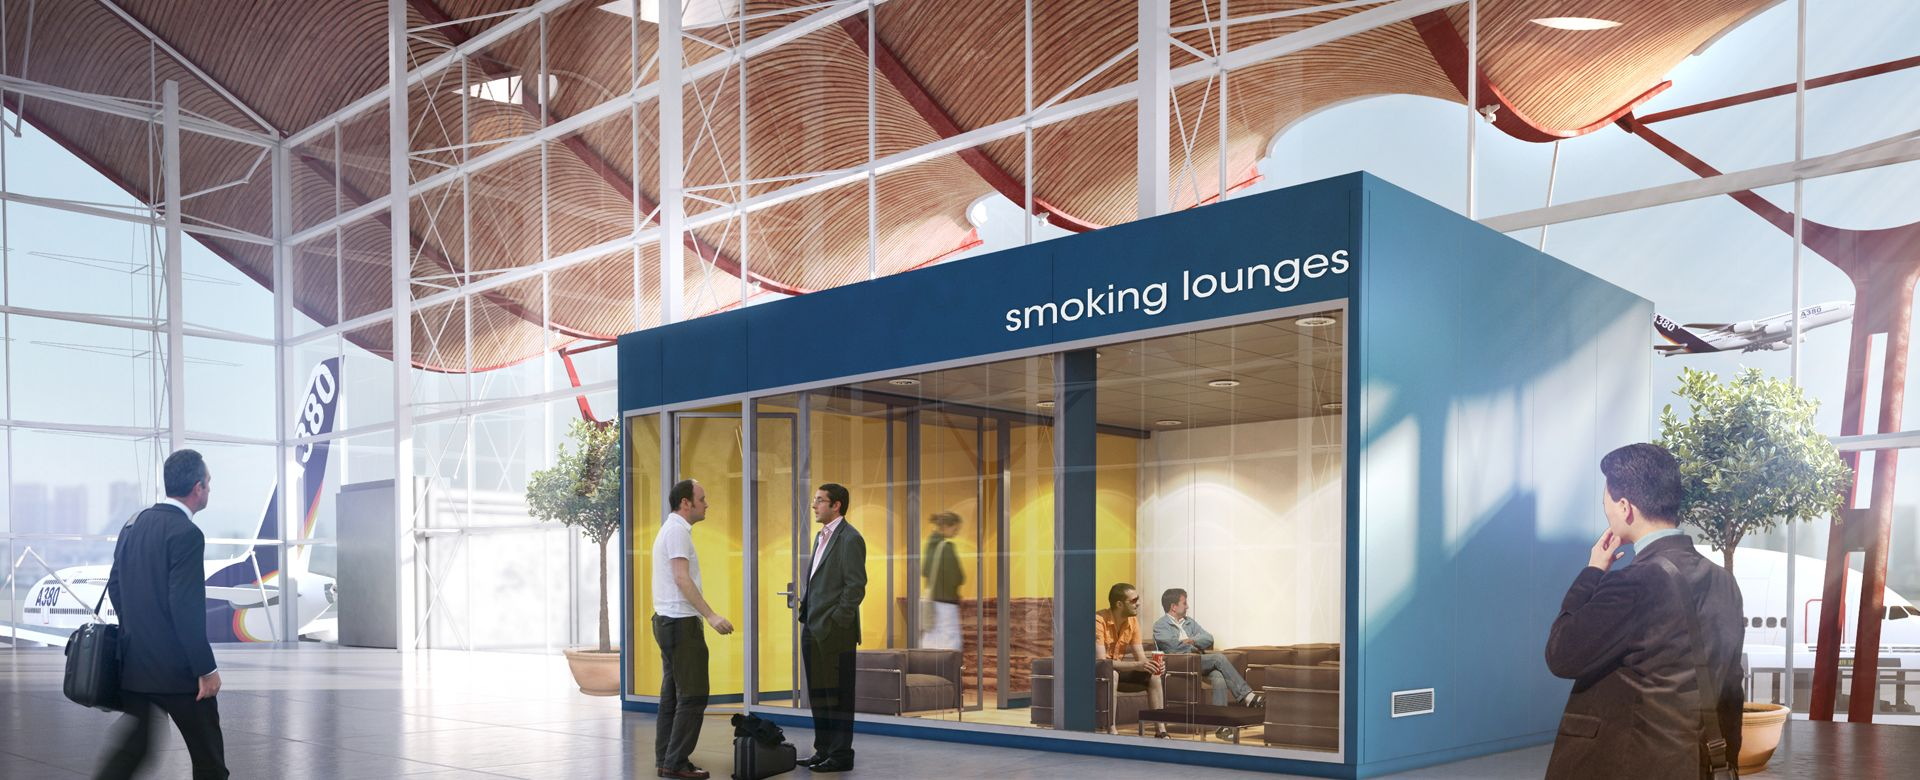 Smoking lounges